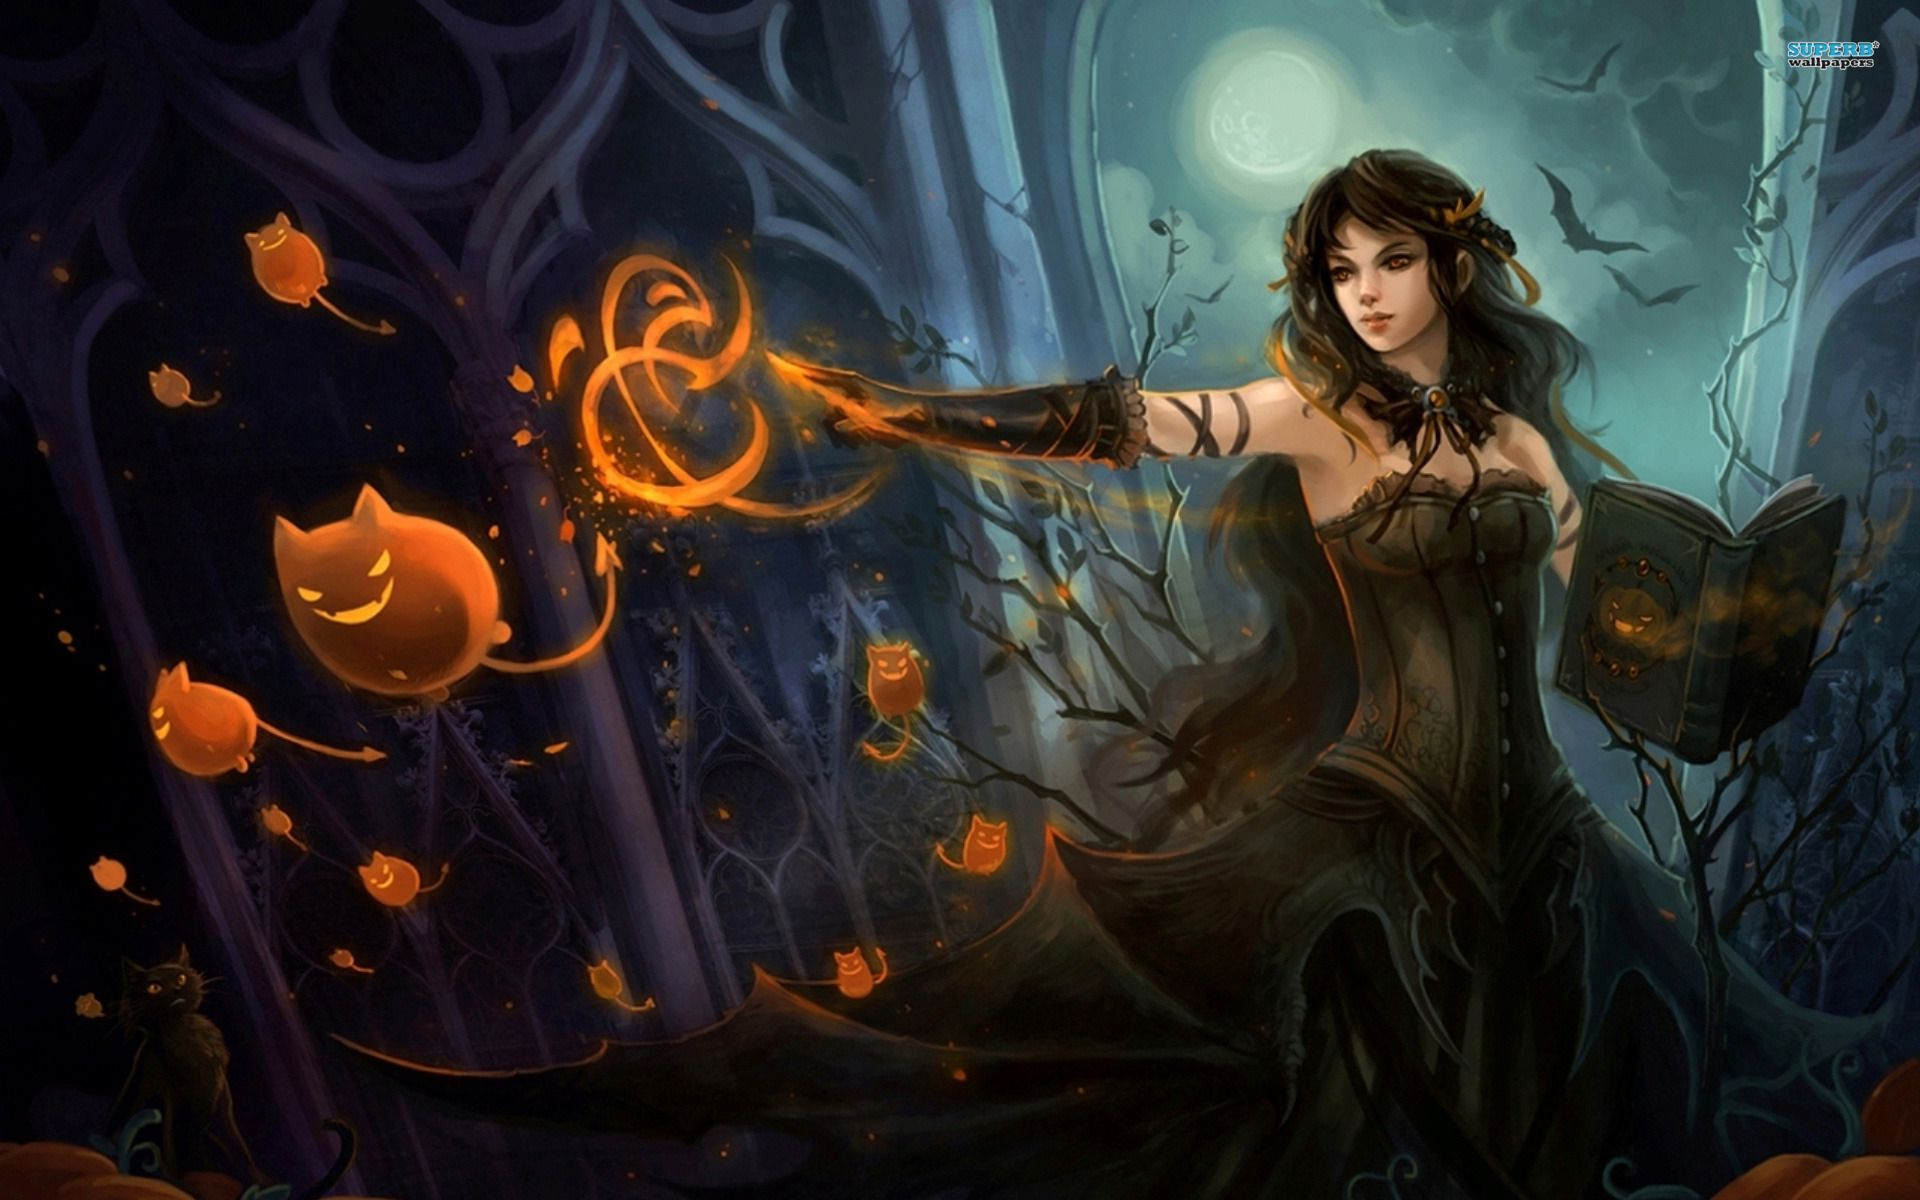 Witchcraft Wallpaper Witch wallpaper Fantasy